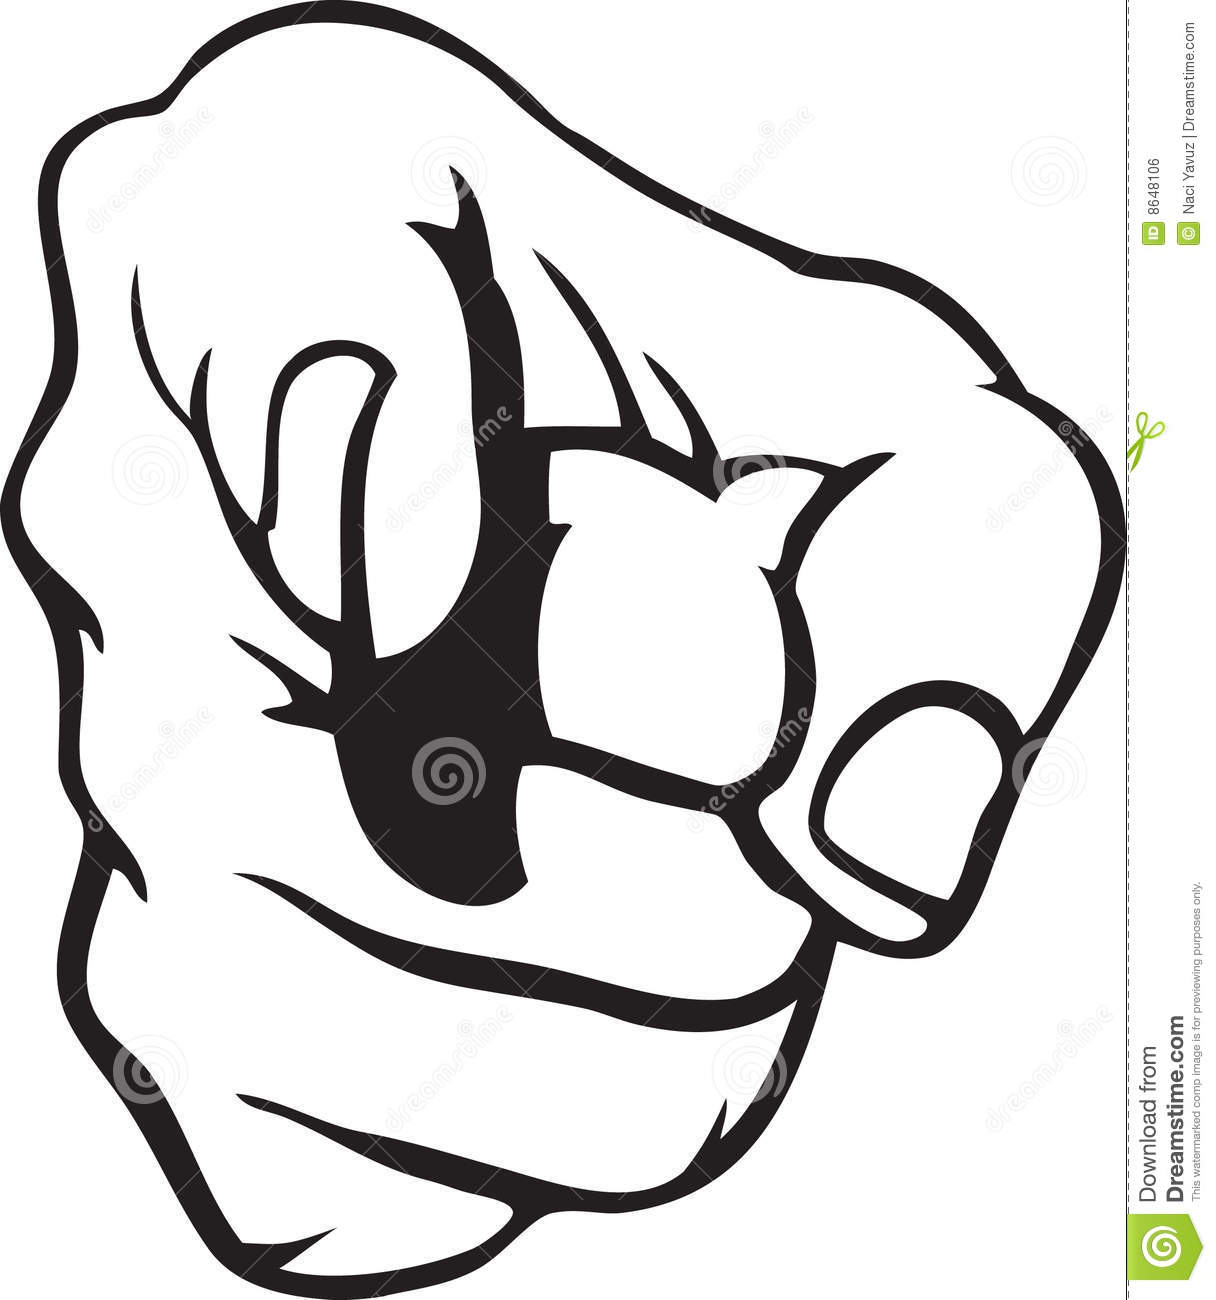 Hand Pointing Royalty Free Stock Image